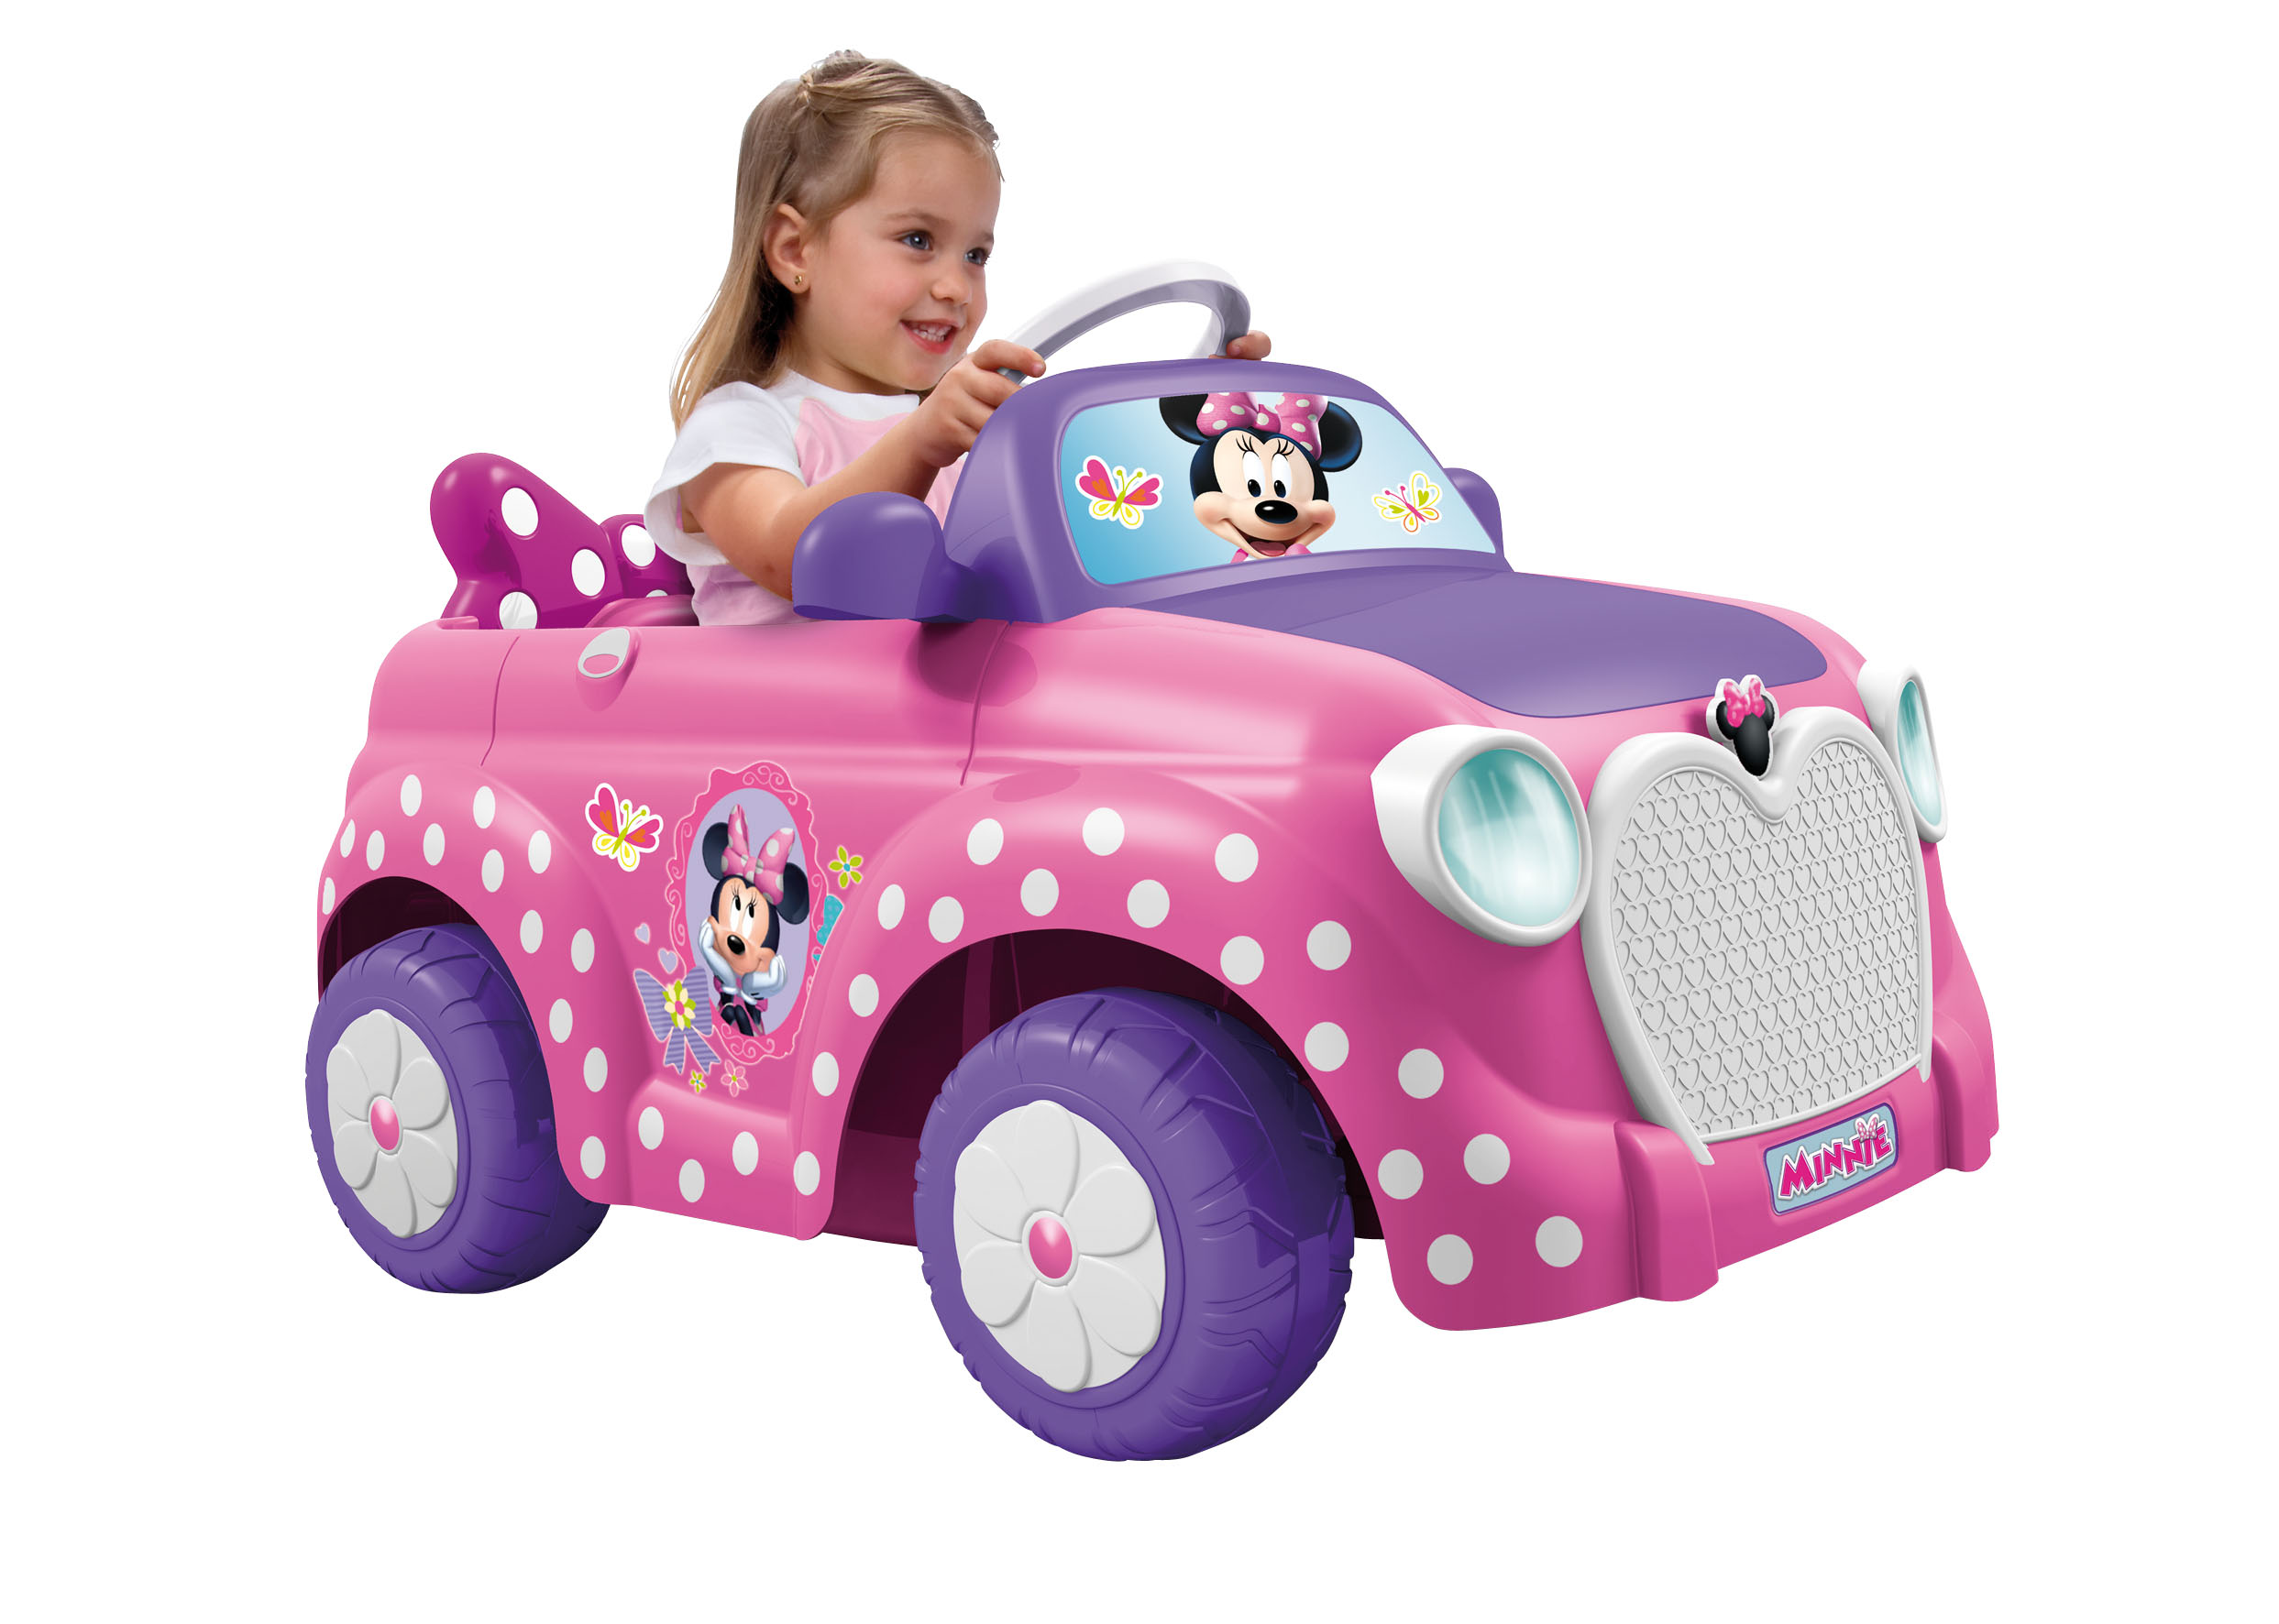 Voiture minnie 6 volts de feber - Voiture minnie ...